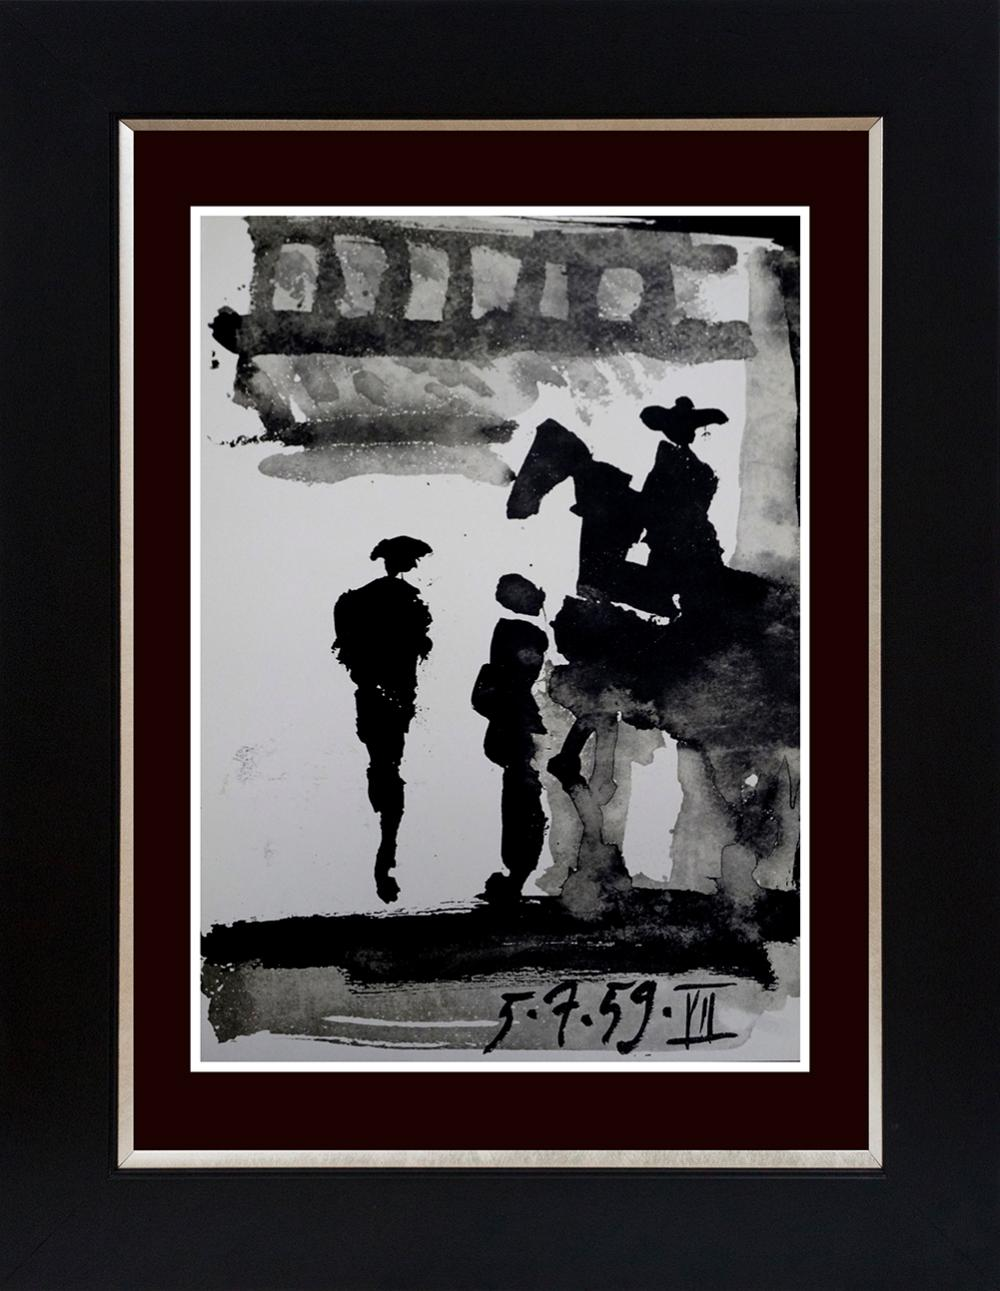 Lot 2932: Pablo Picasso lithograph from 1964